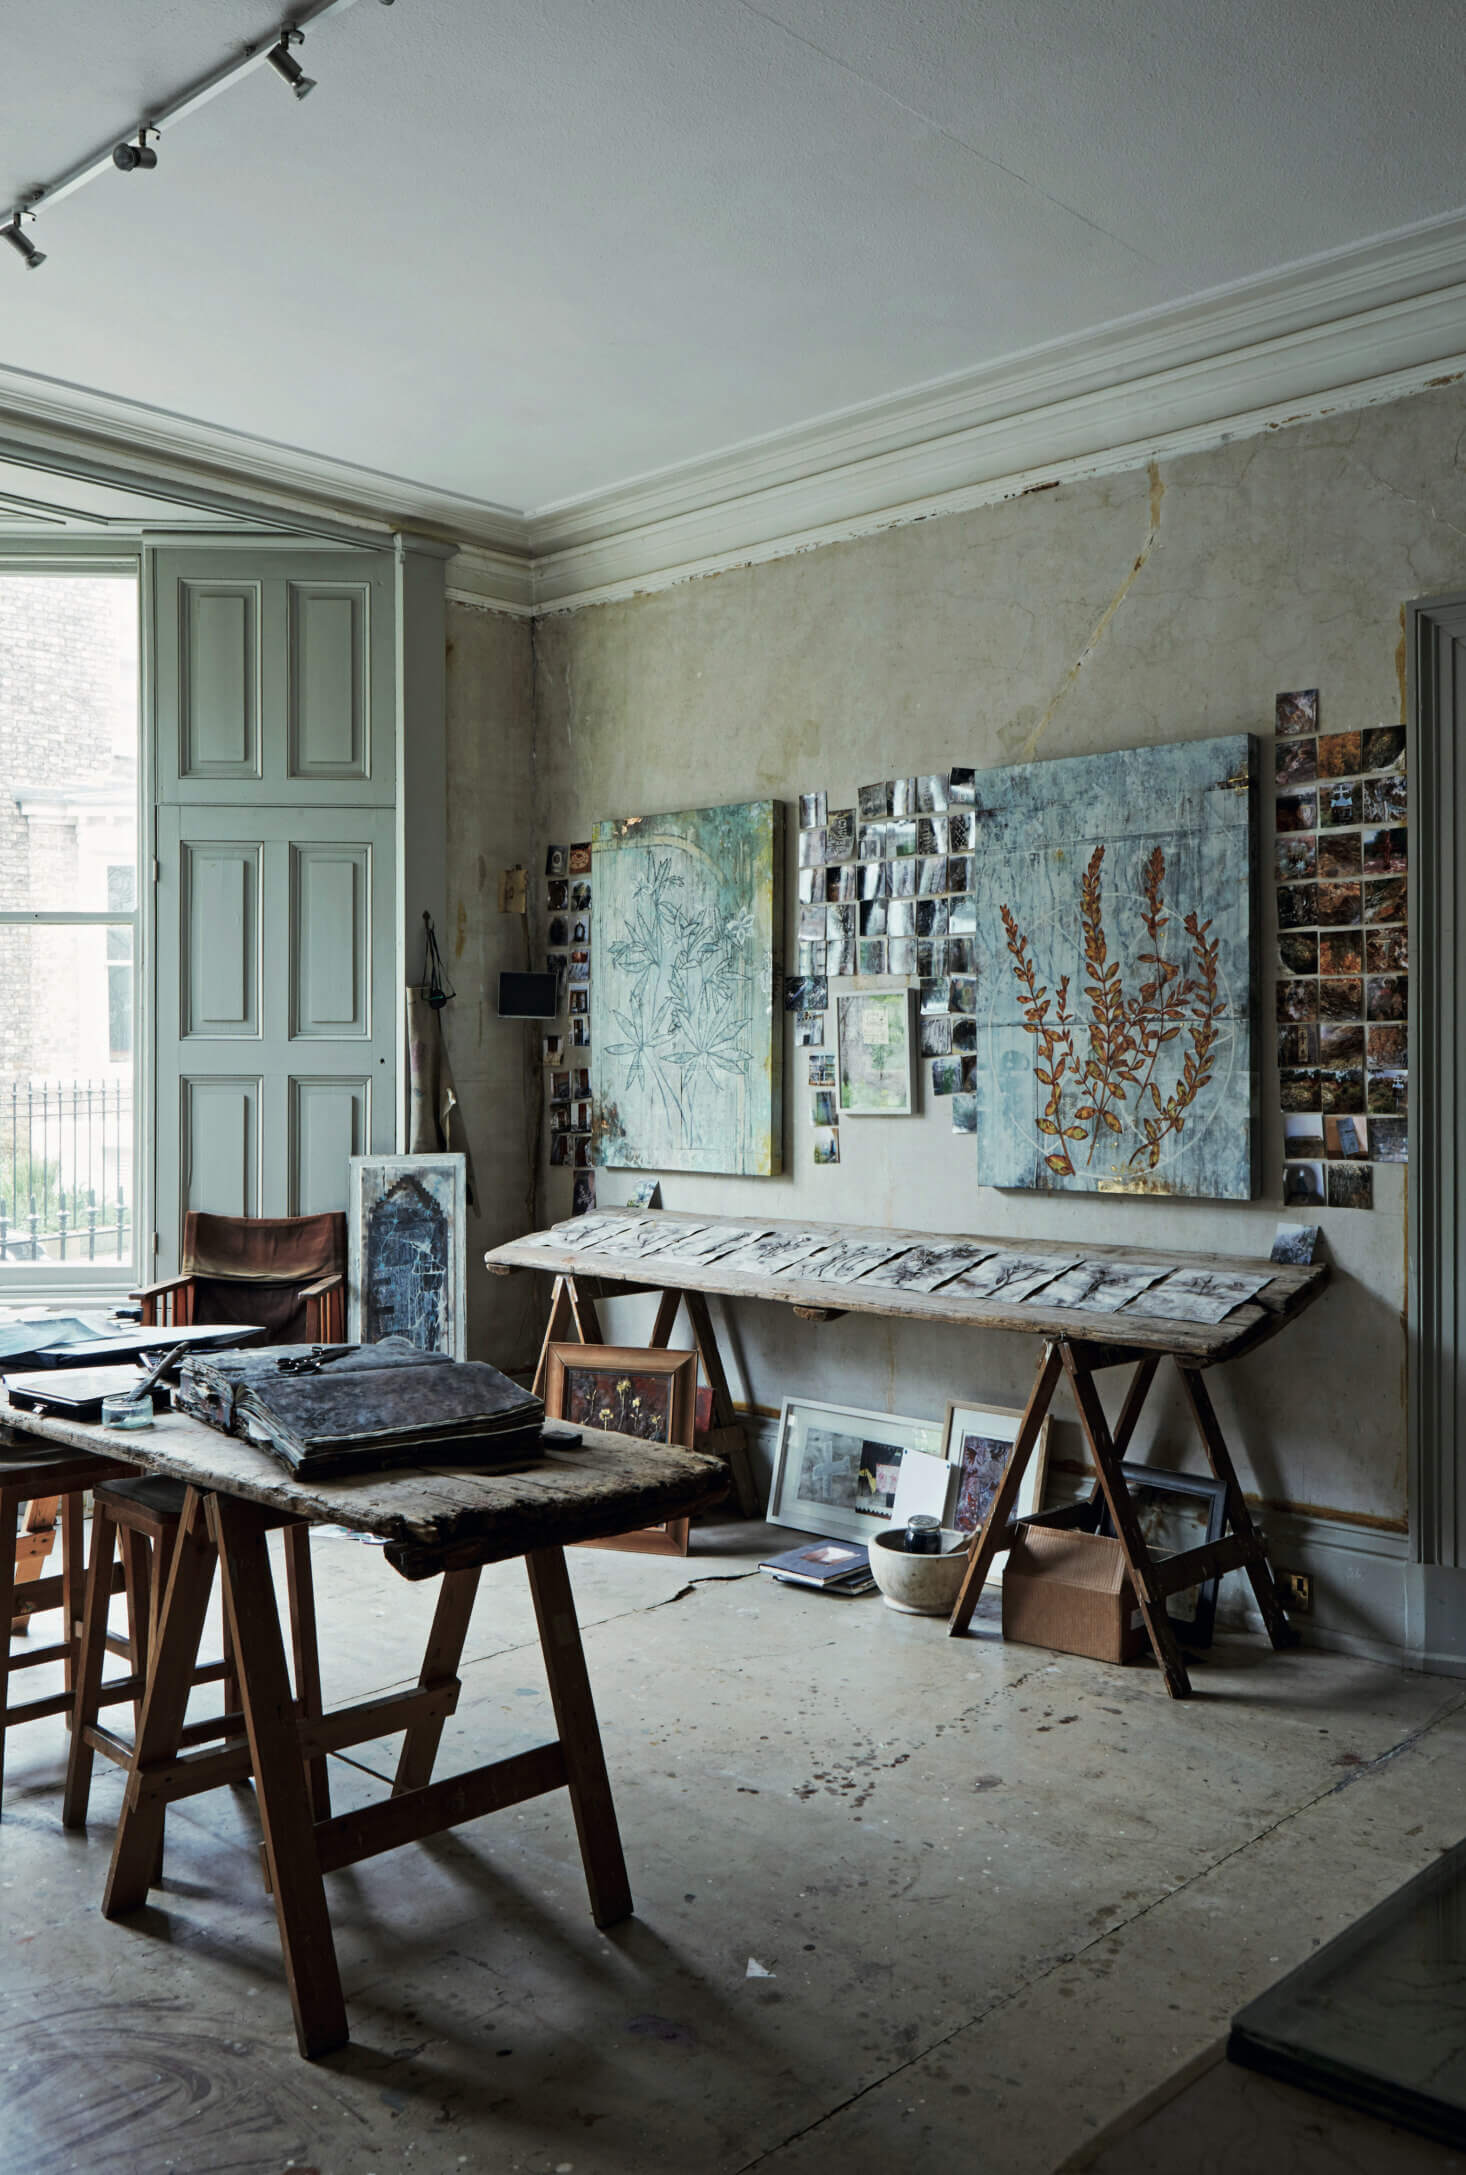 Design Love | Artist Lofts and Home Ateliers